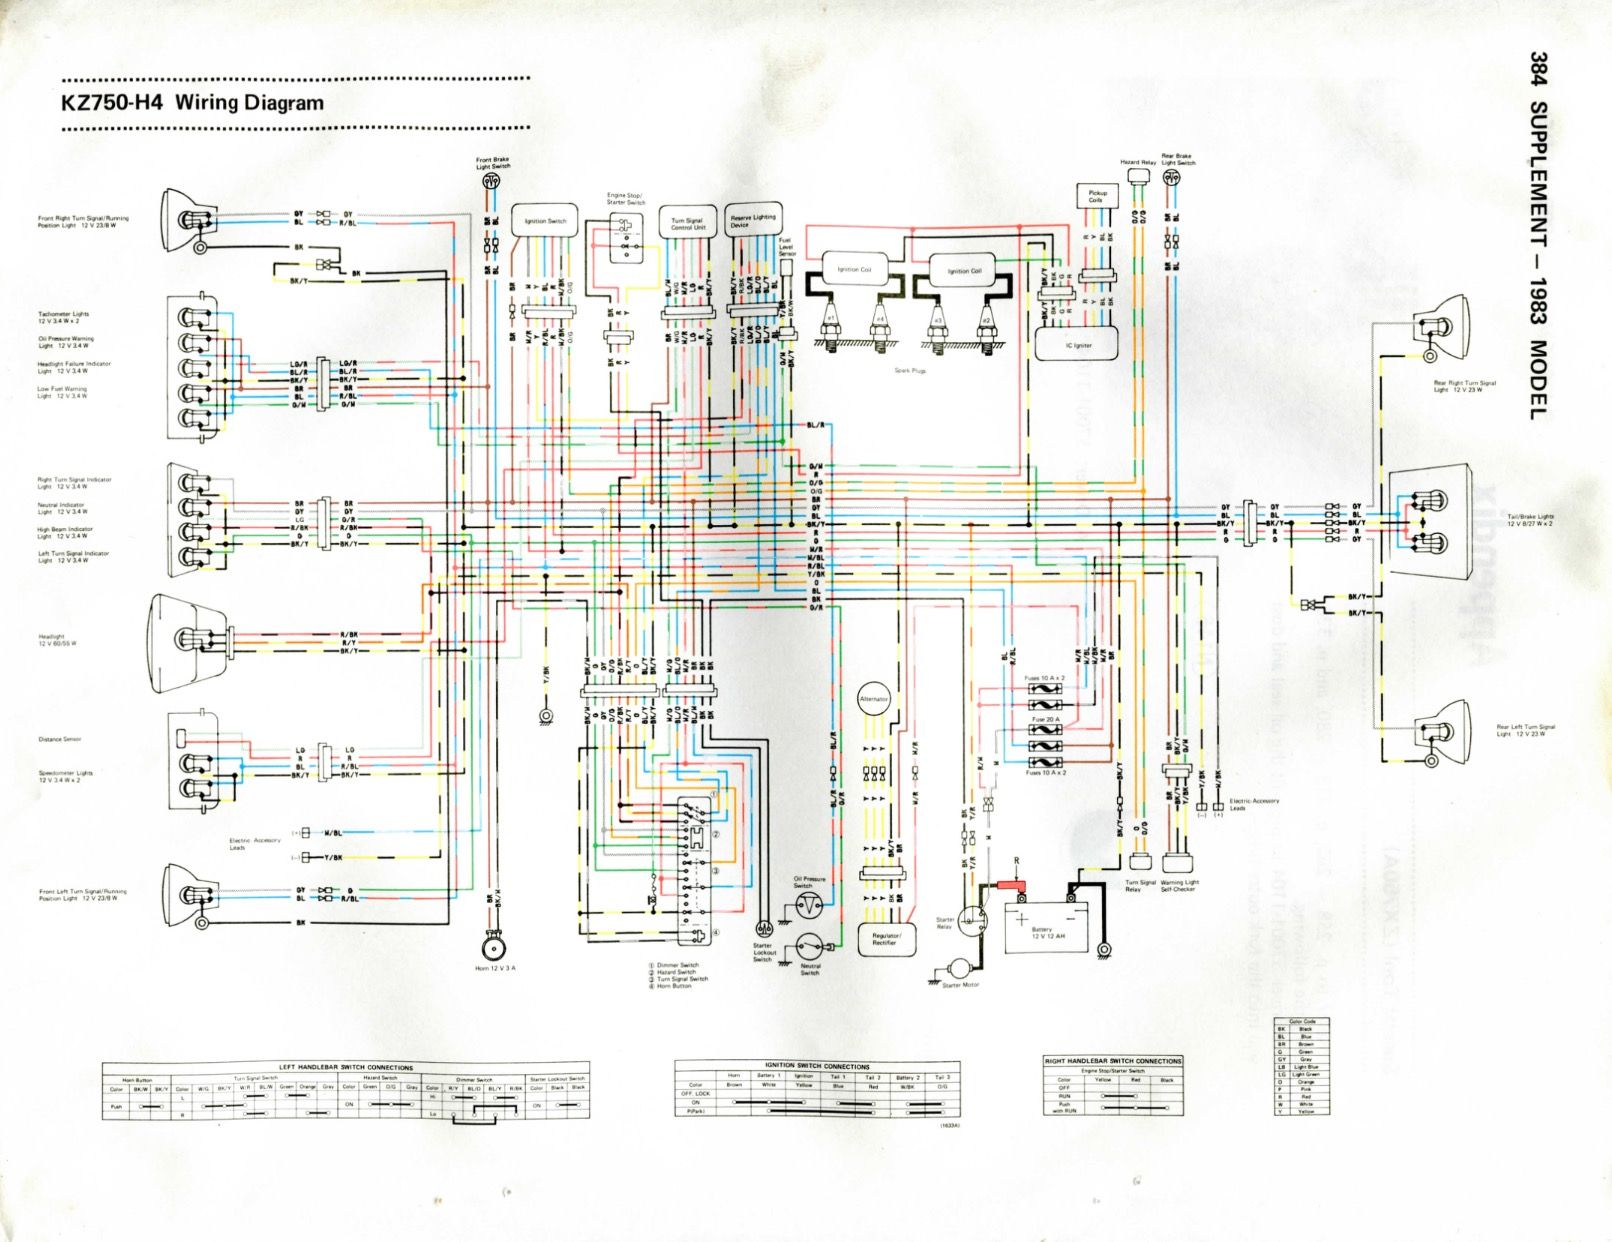 hight resolution of wiring diagram for 1983 kawasaki 750 ltd get free moreover kawasaki kawasaki brute force 750 wiring diagram kawasaki 750 wiring diagram